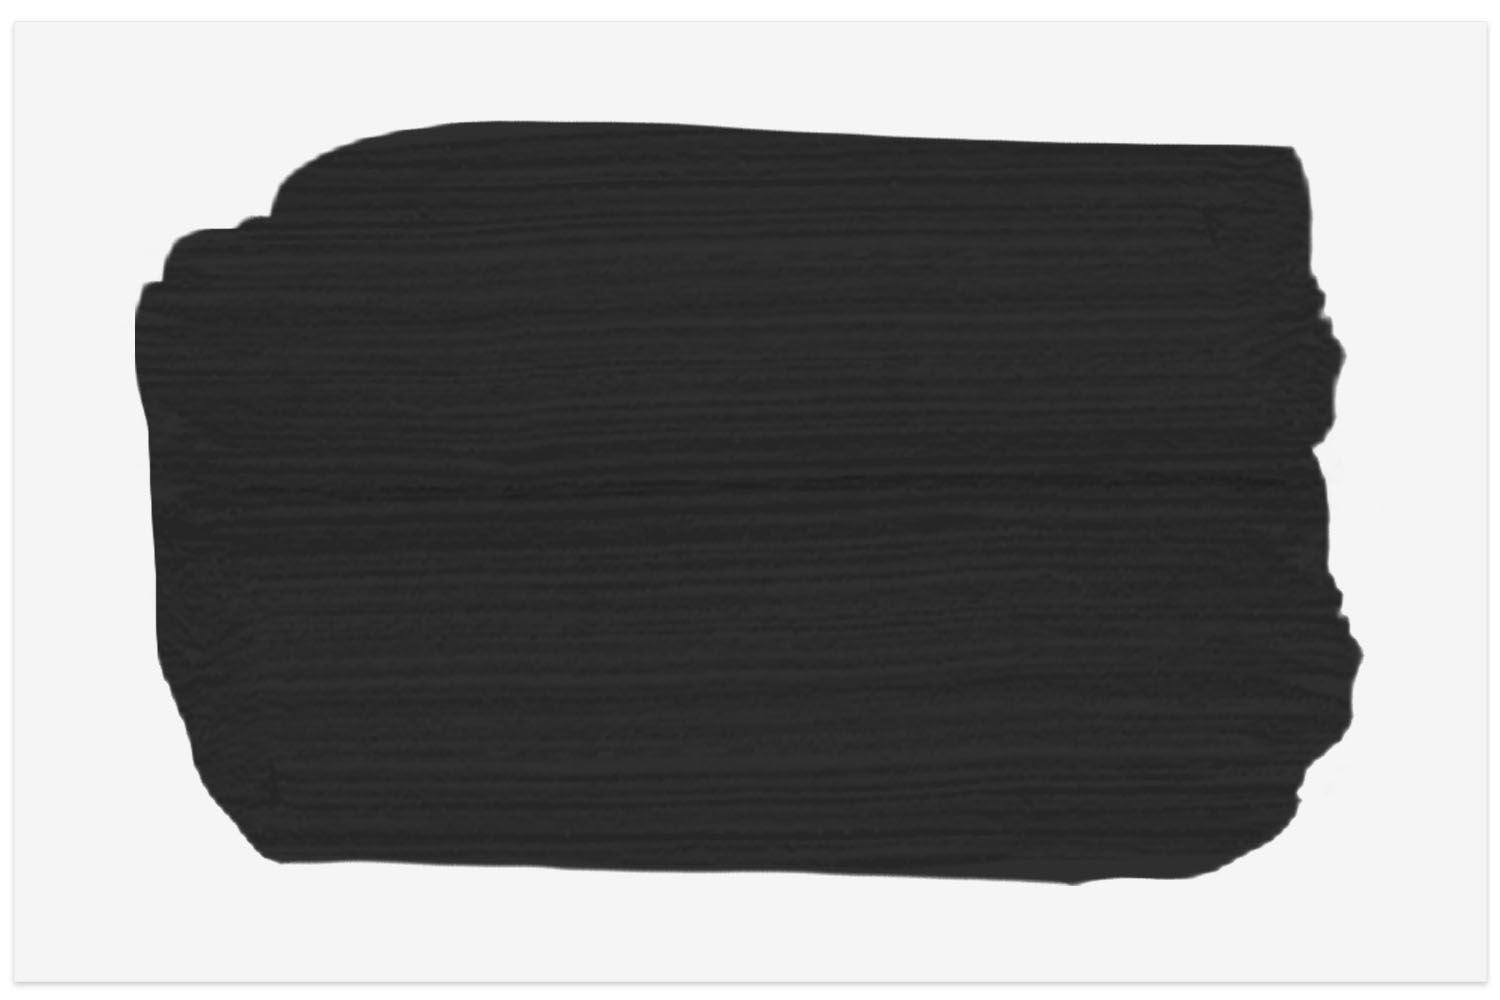 Sherwin-Williams Tricorn Black swatch